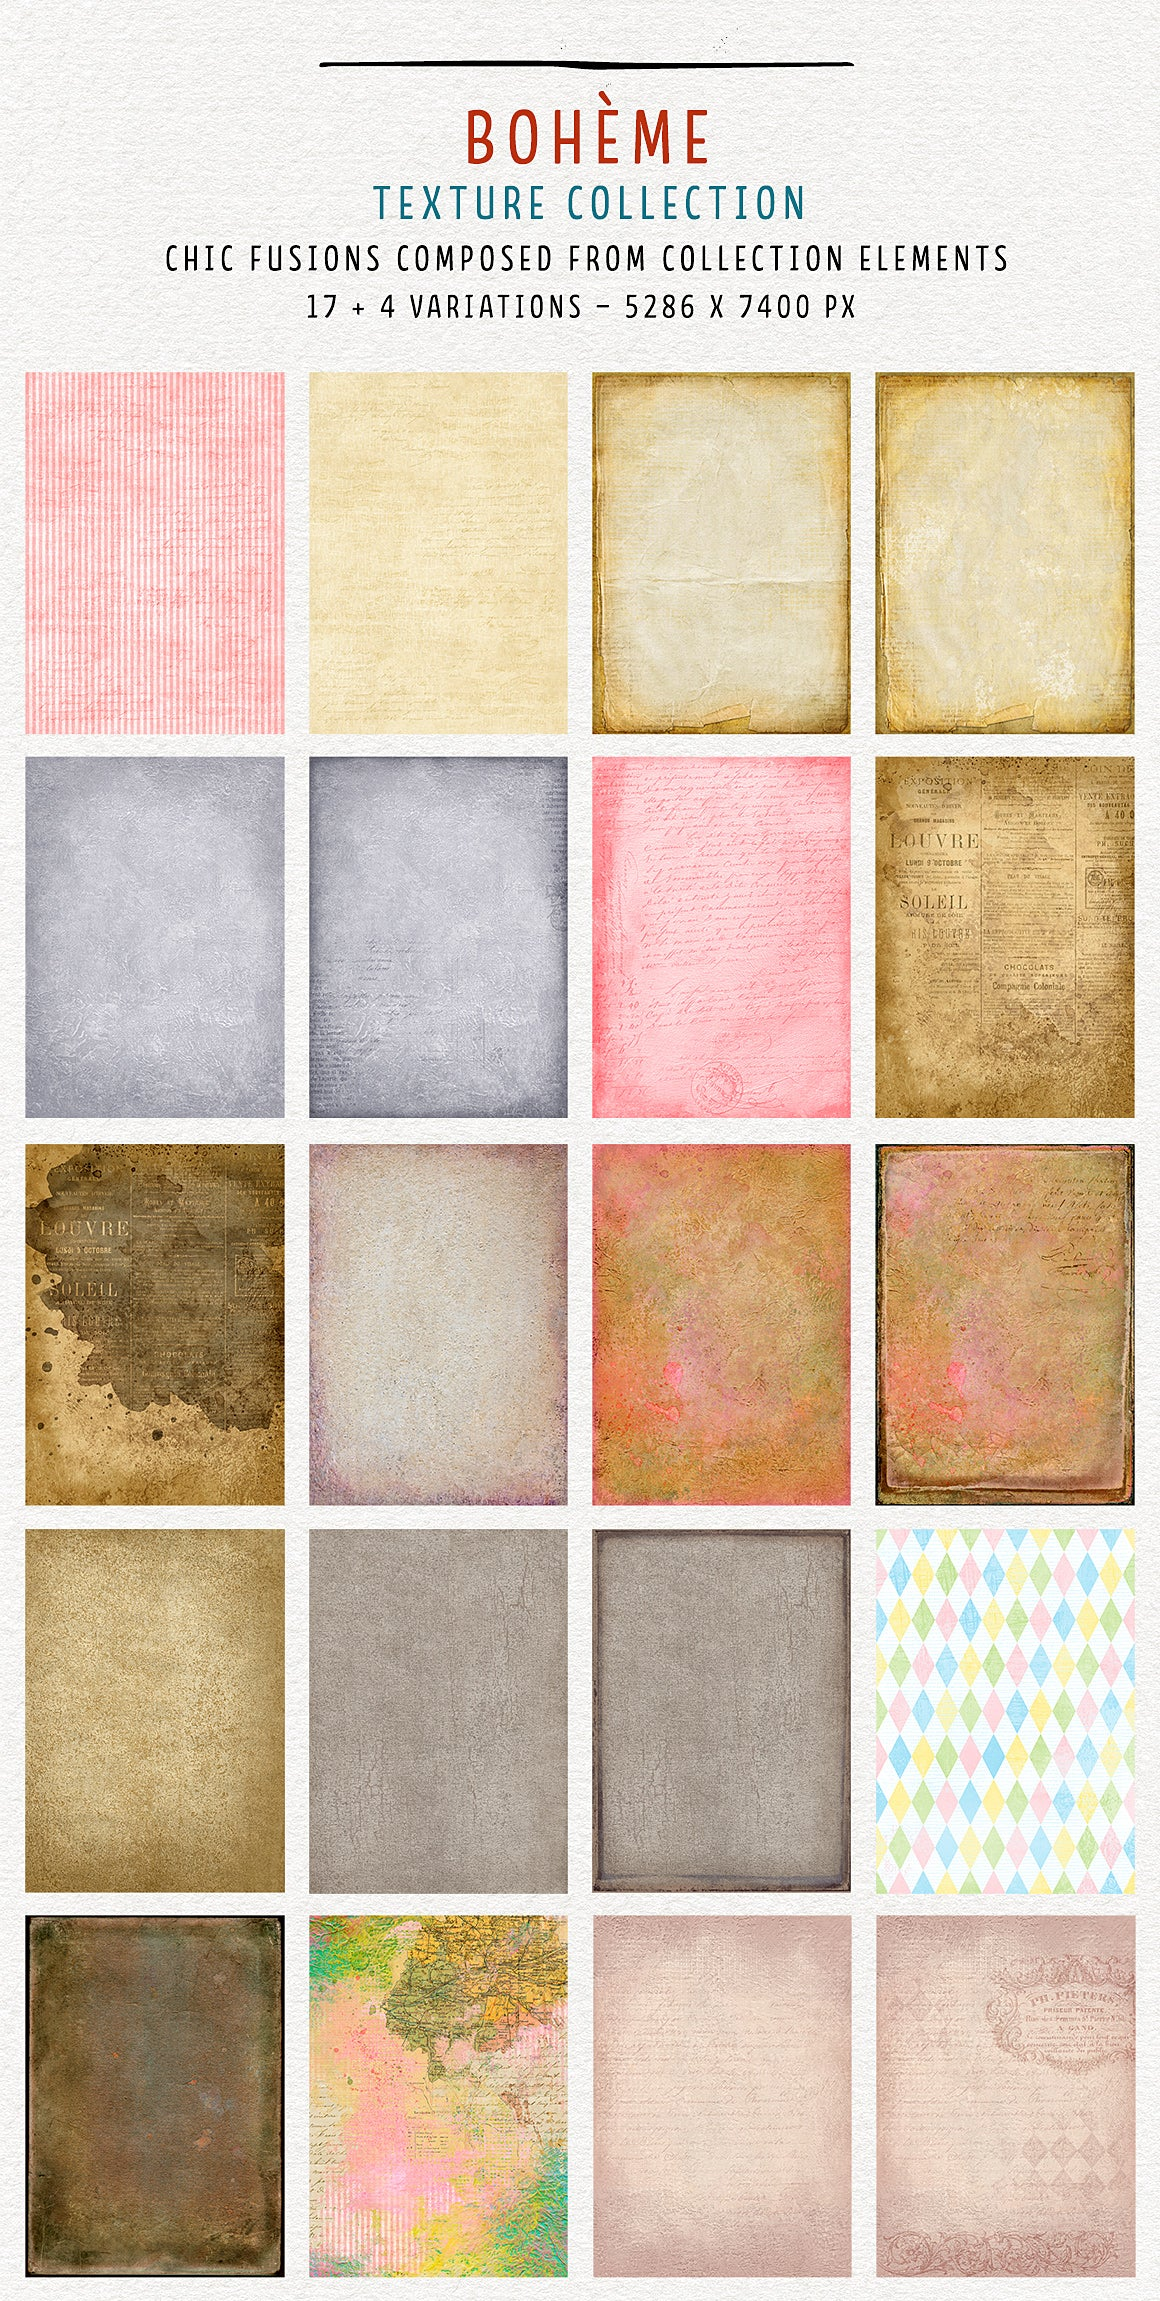 Boheme chic fusions texture collection with vintage elements. Extra-large, Extended license.